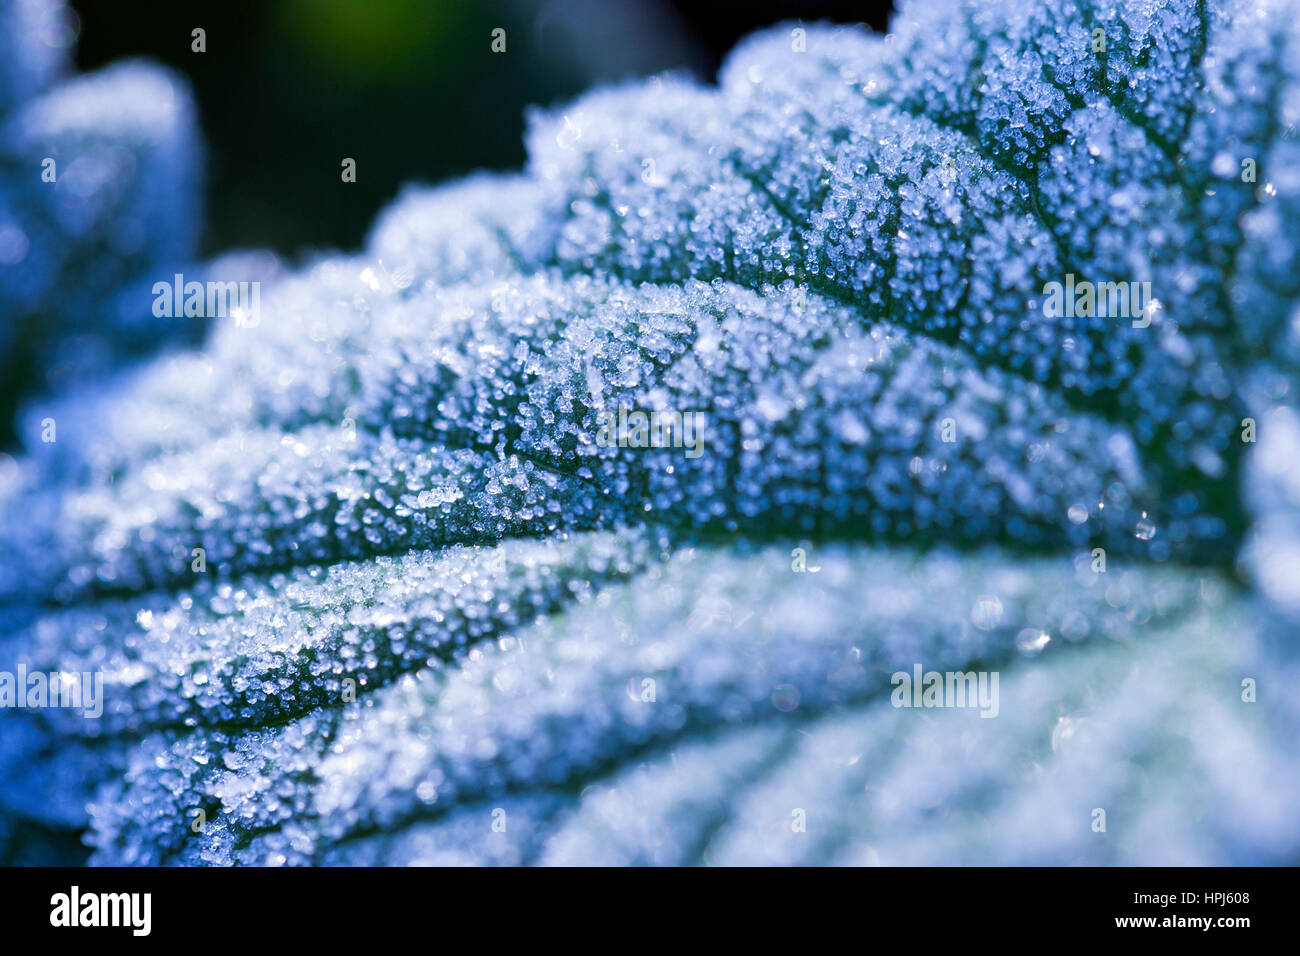 Frosted leaves - Stock Image